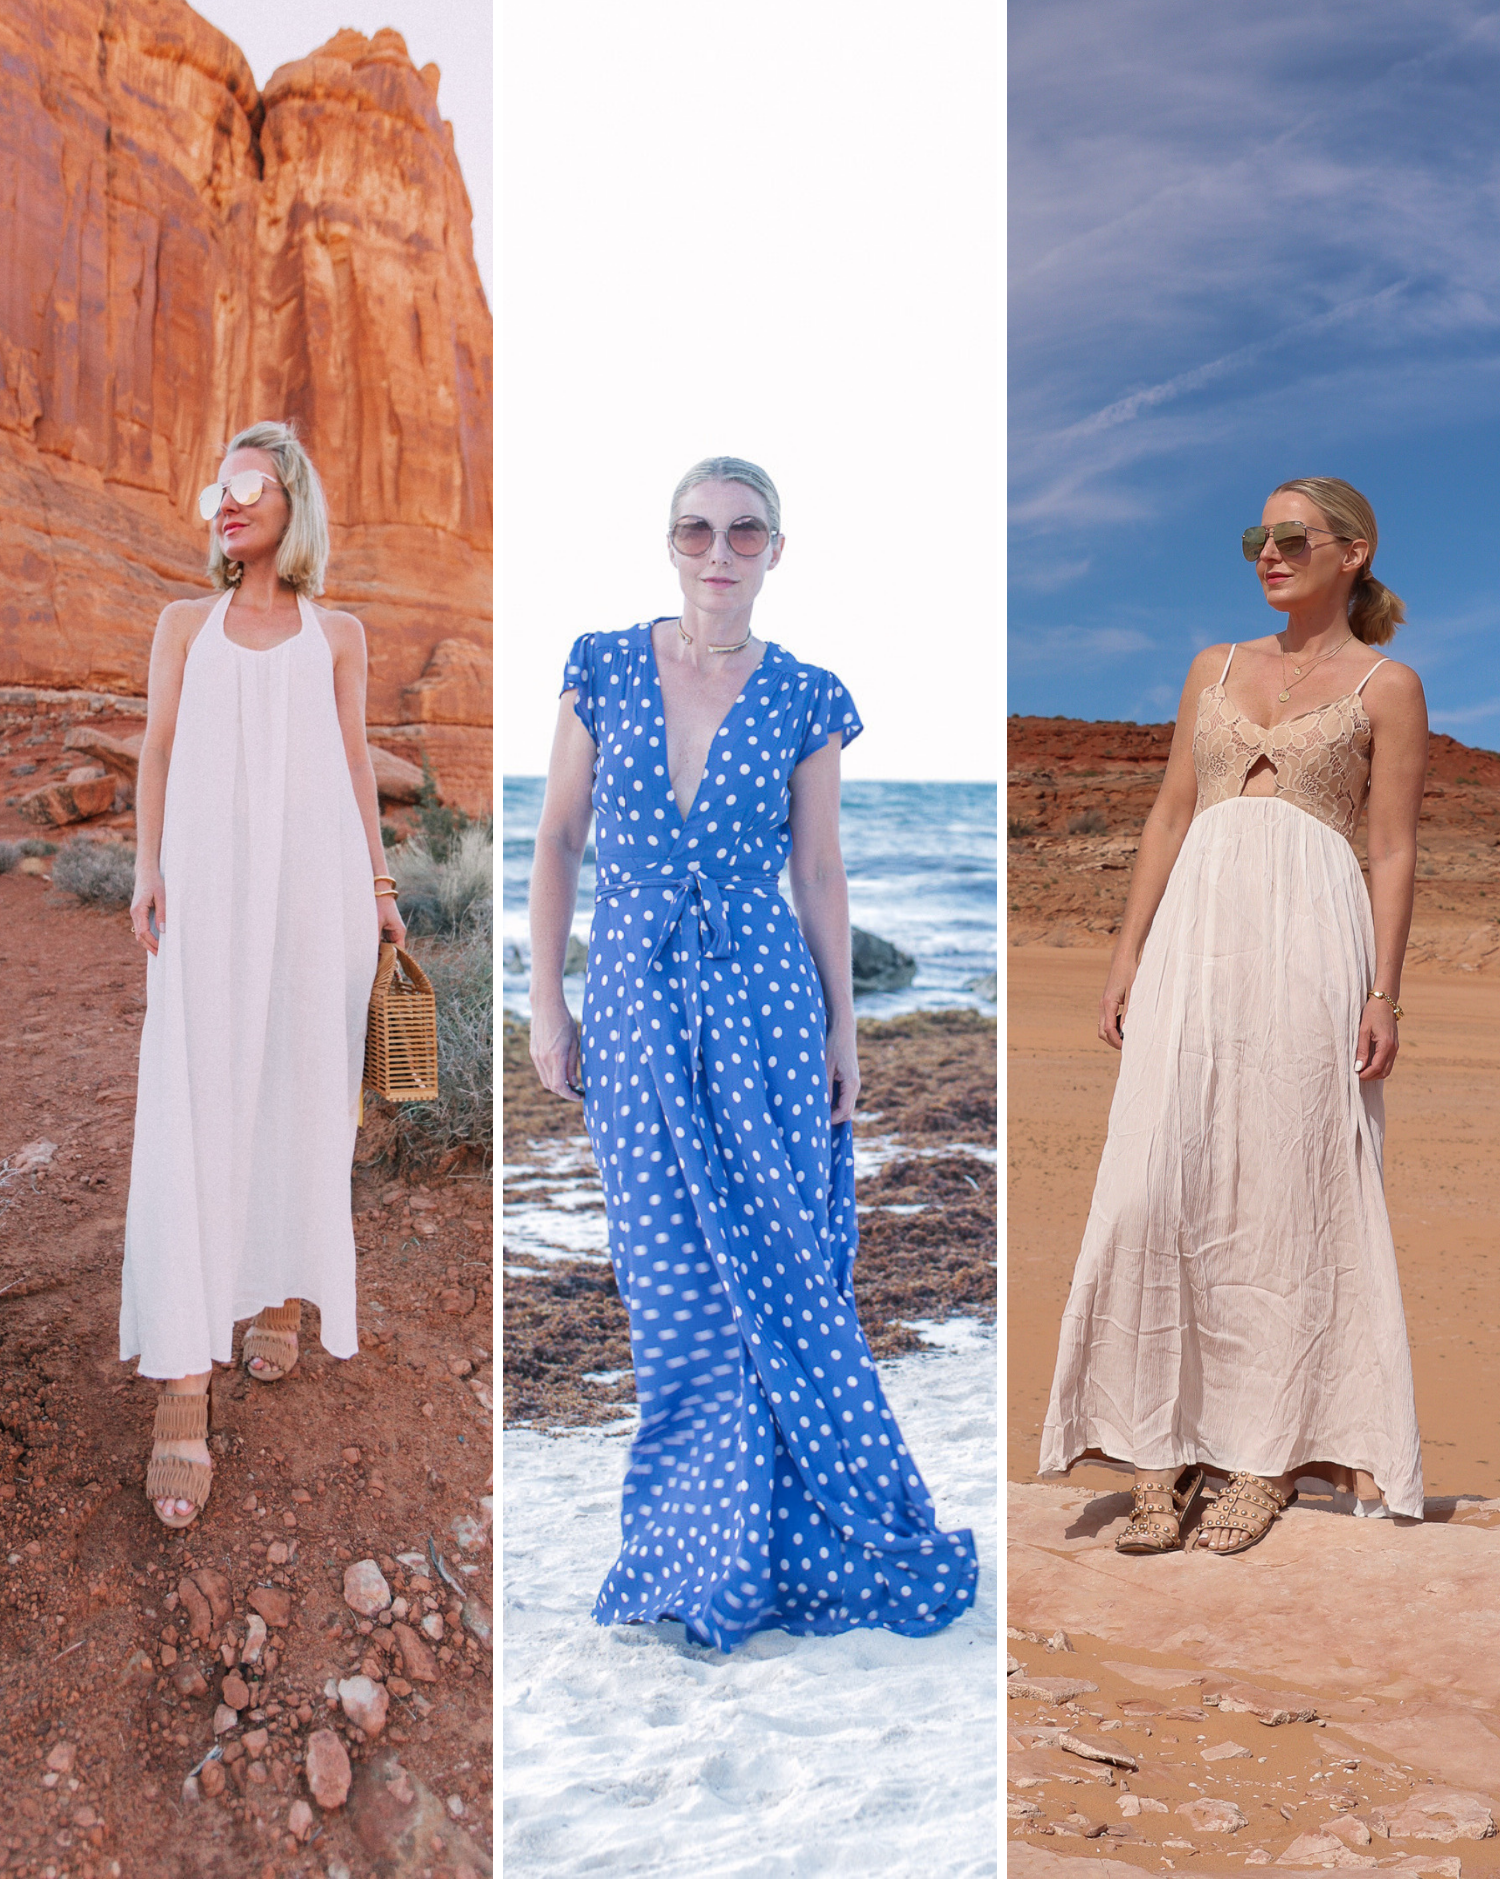 Fashion blogger busbee style wearing maxi dresses by 9seed and Tularosa